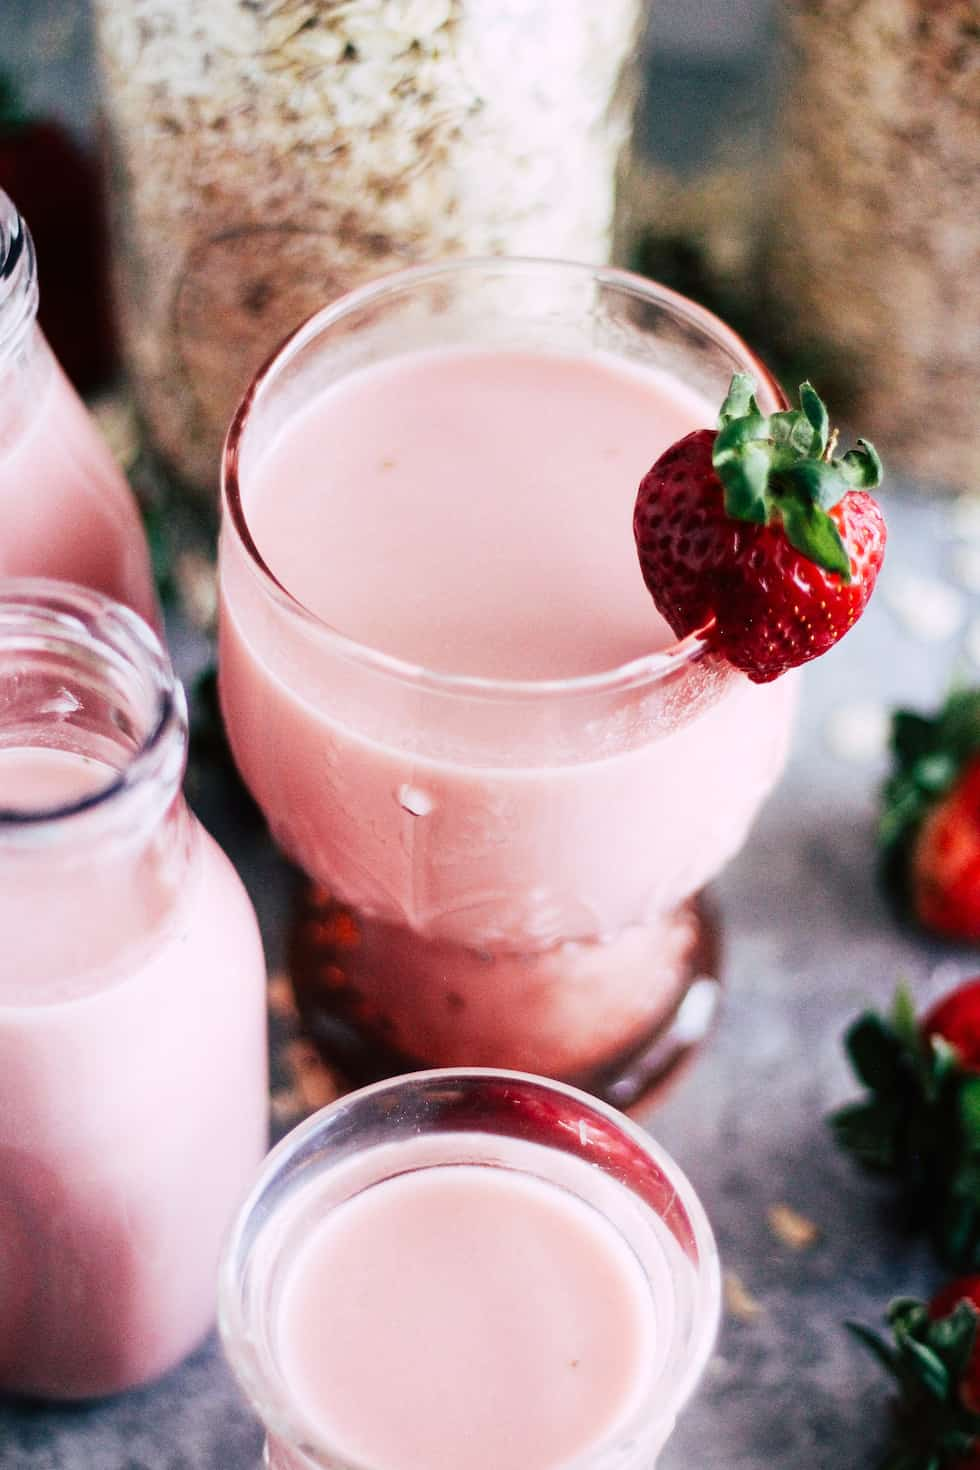 strawberry oat milk in pink glass. One of the recipes featured in this Summer Produce Guide.